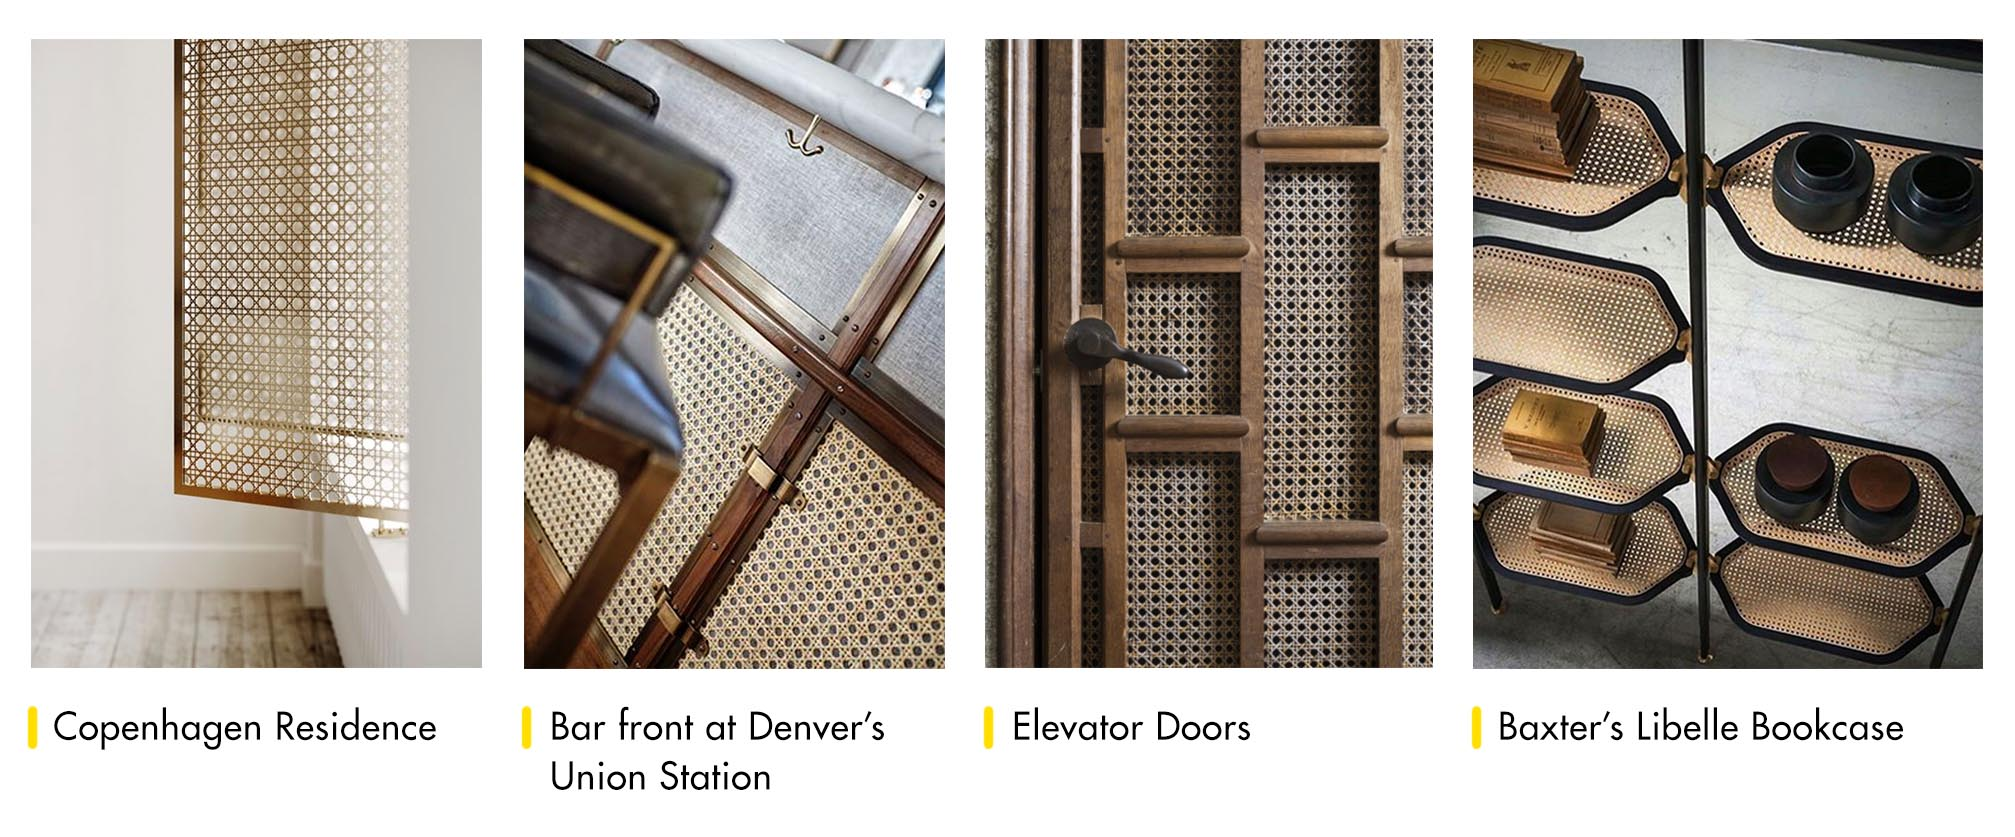 Cane used in residence window shades, F+B environments, elevator doors, furniture, and more